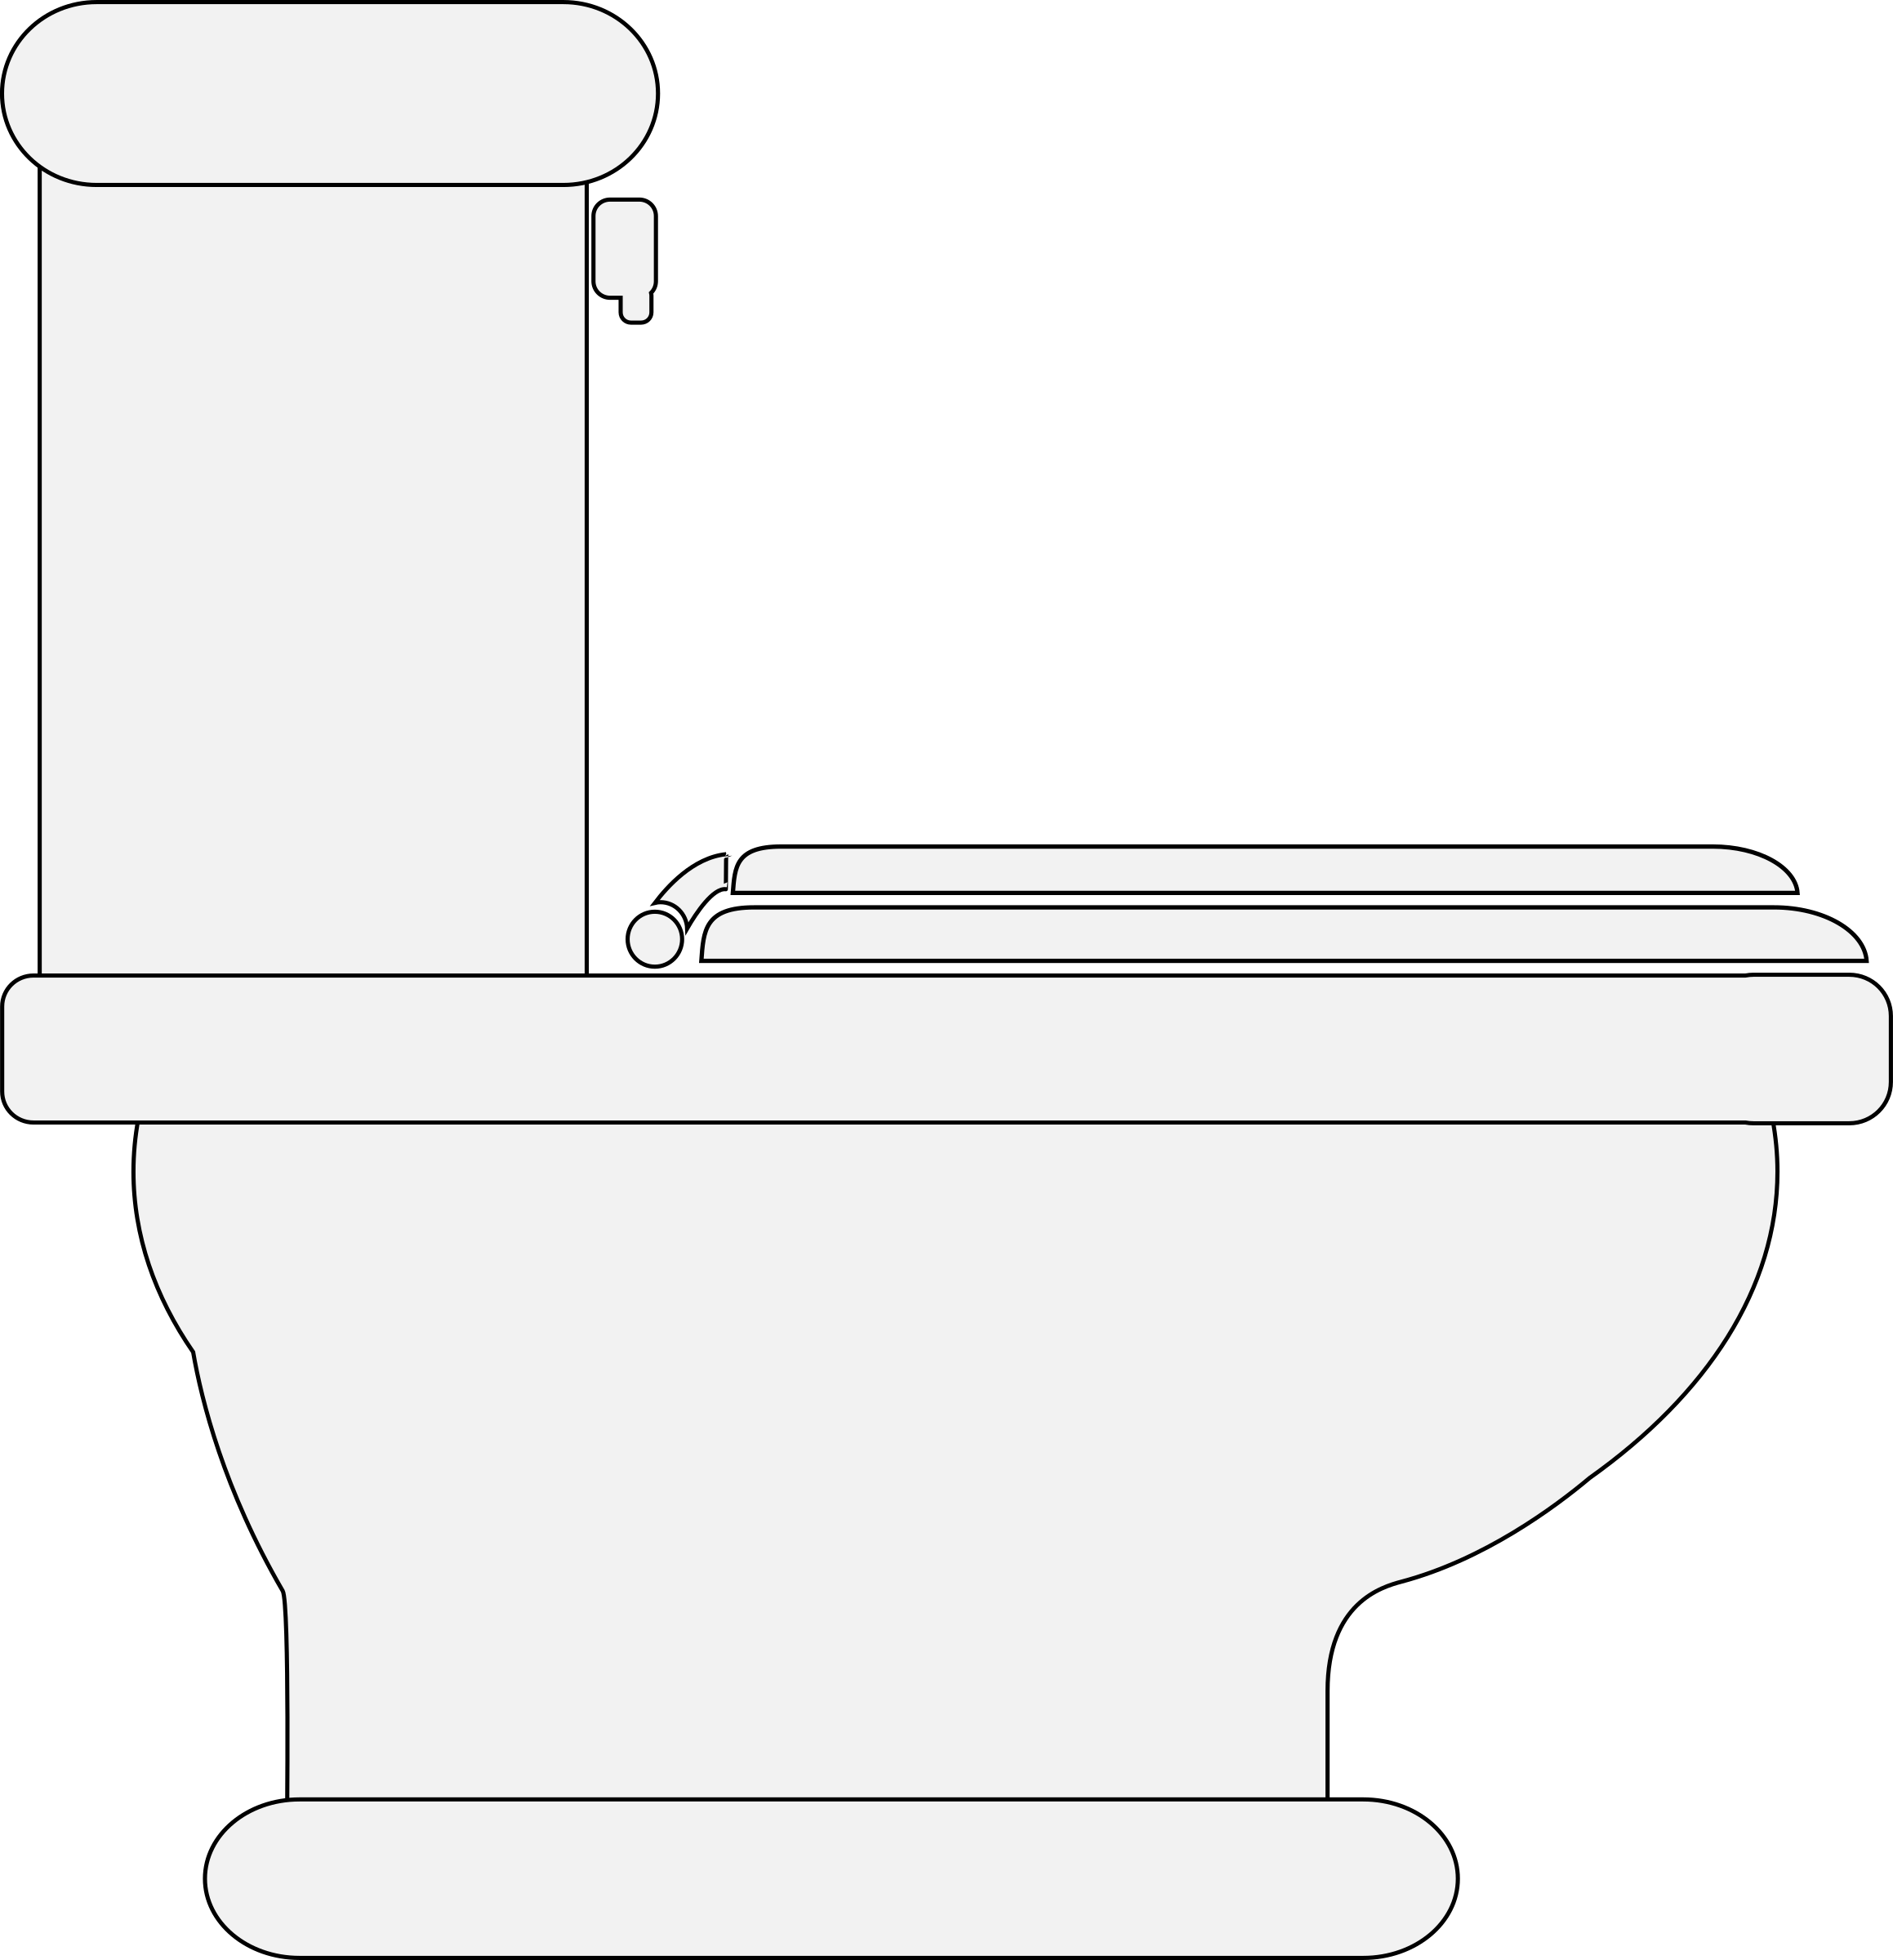 Toilet bowl clipart for house plans clip black and white download Clipart - Toilet (Seat Closed) clip black and white download